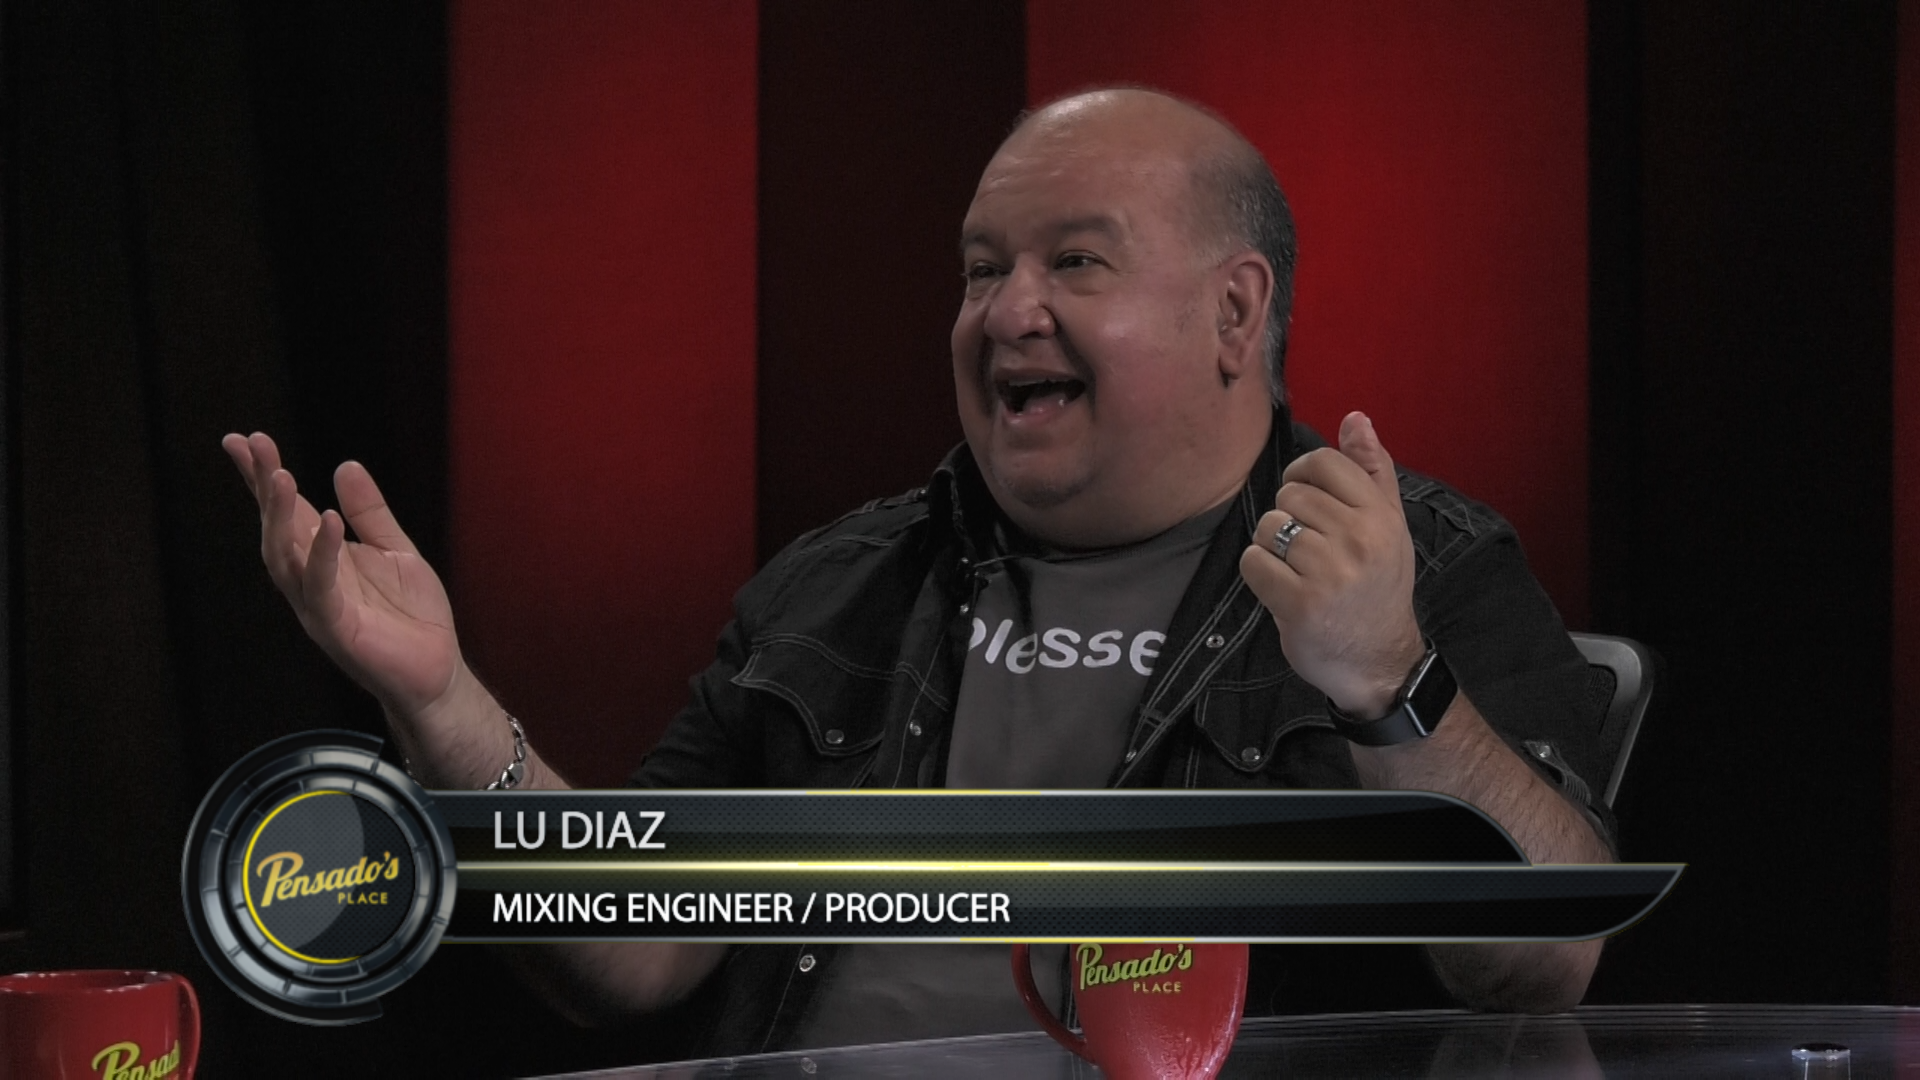 Mix Engineer/Producer Lu Diaz